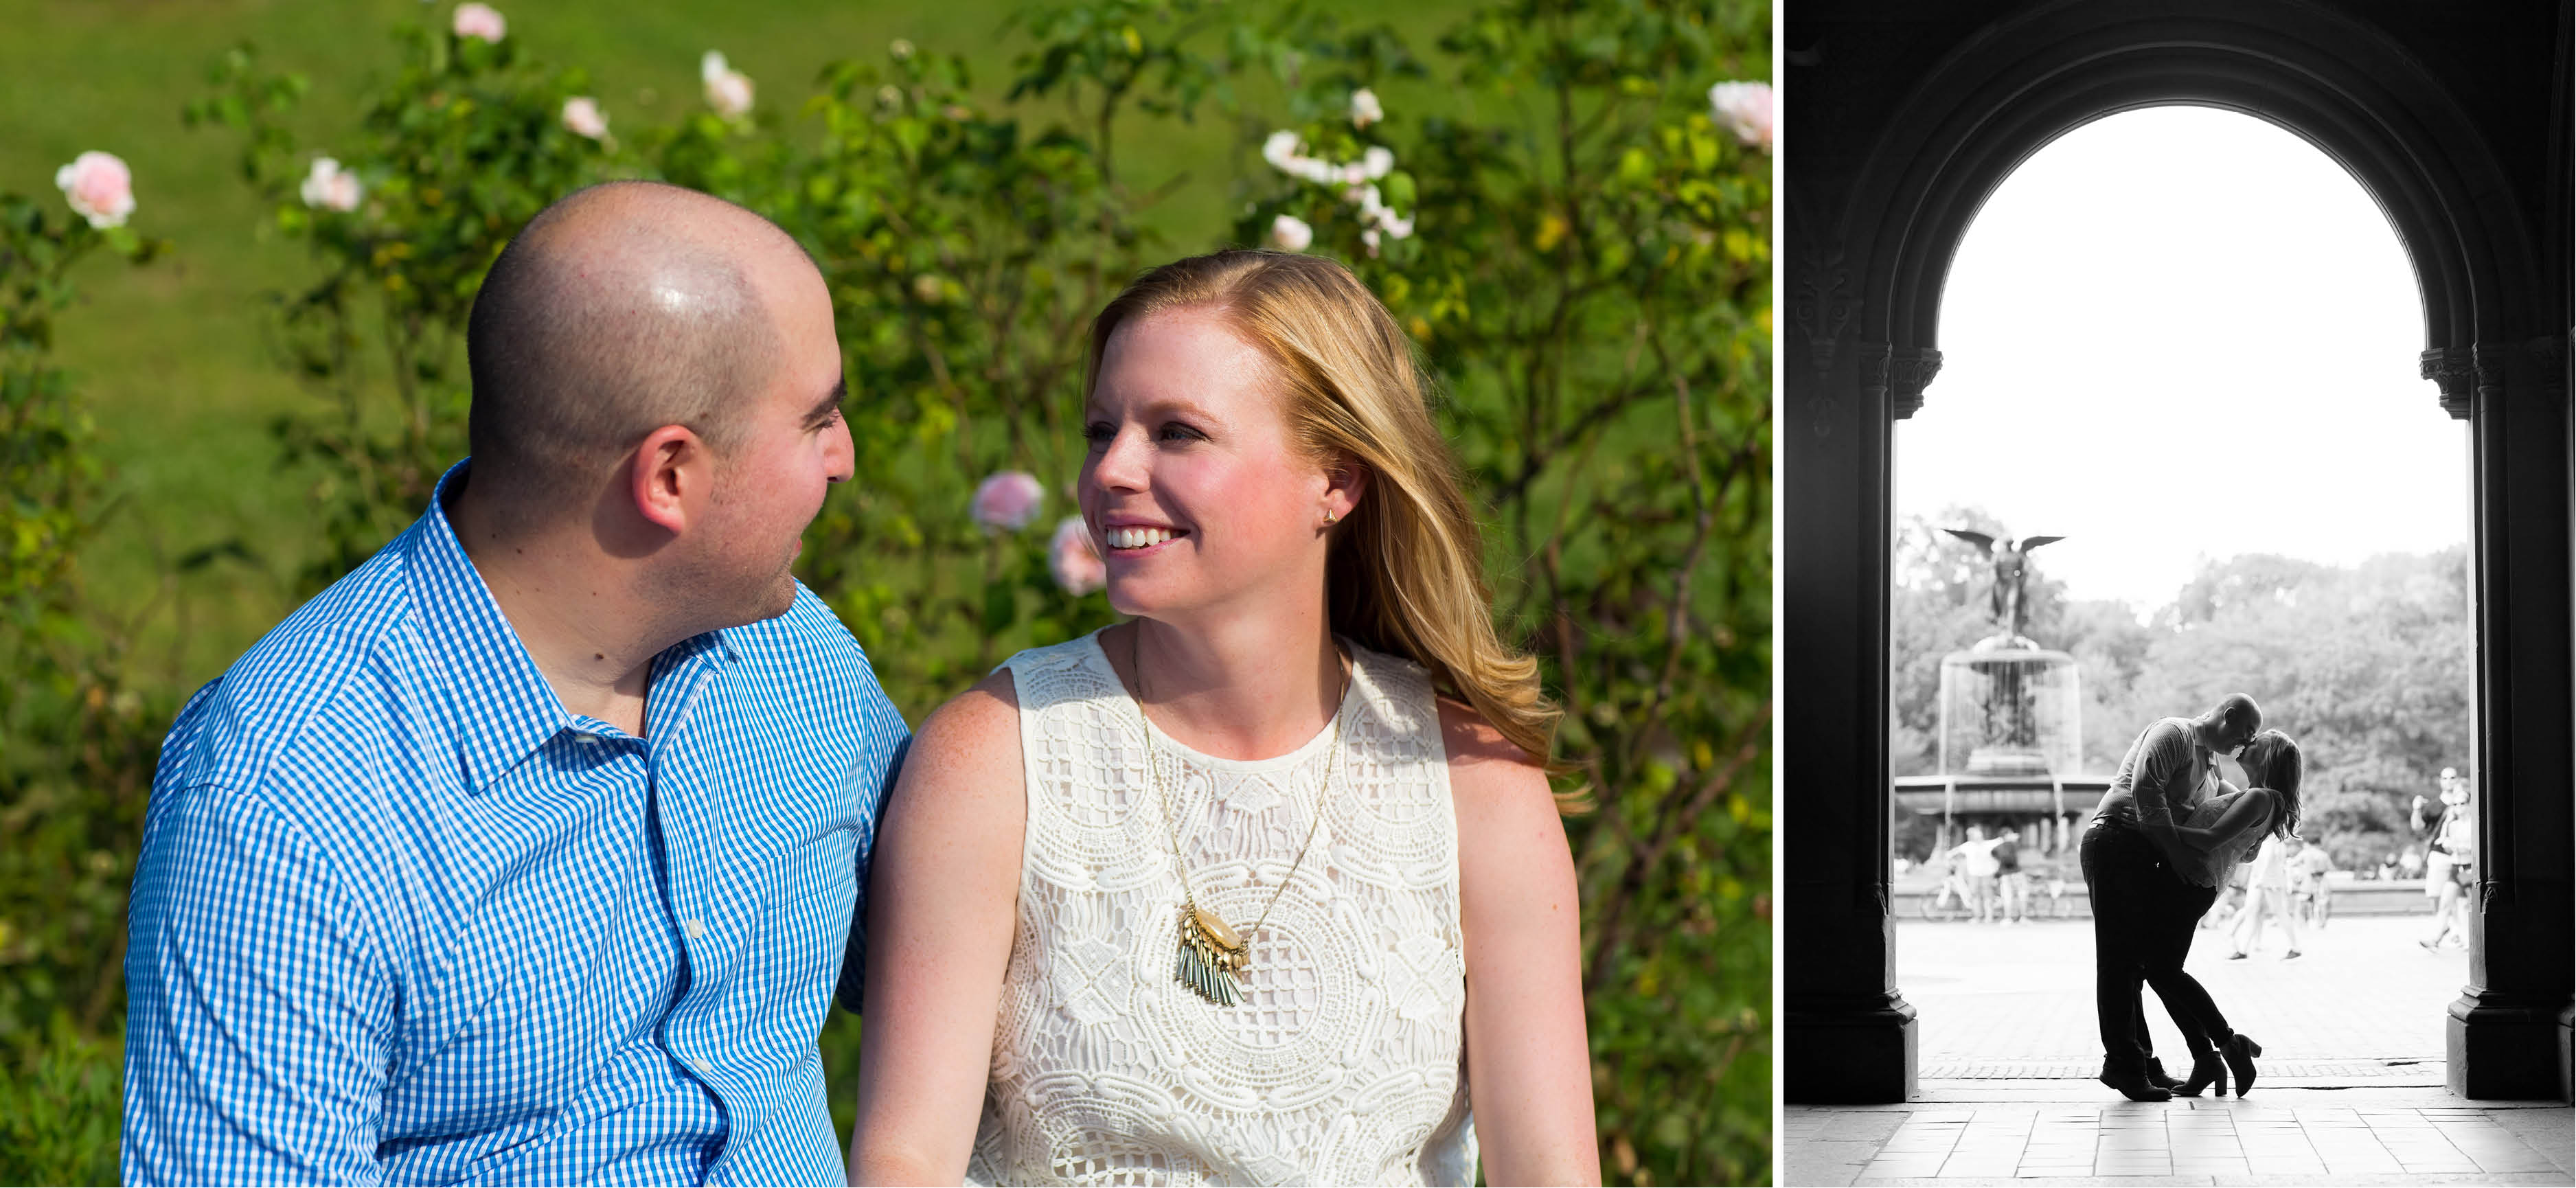 Emma_cleary_photography Central park engagement2